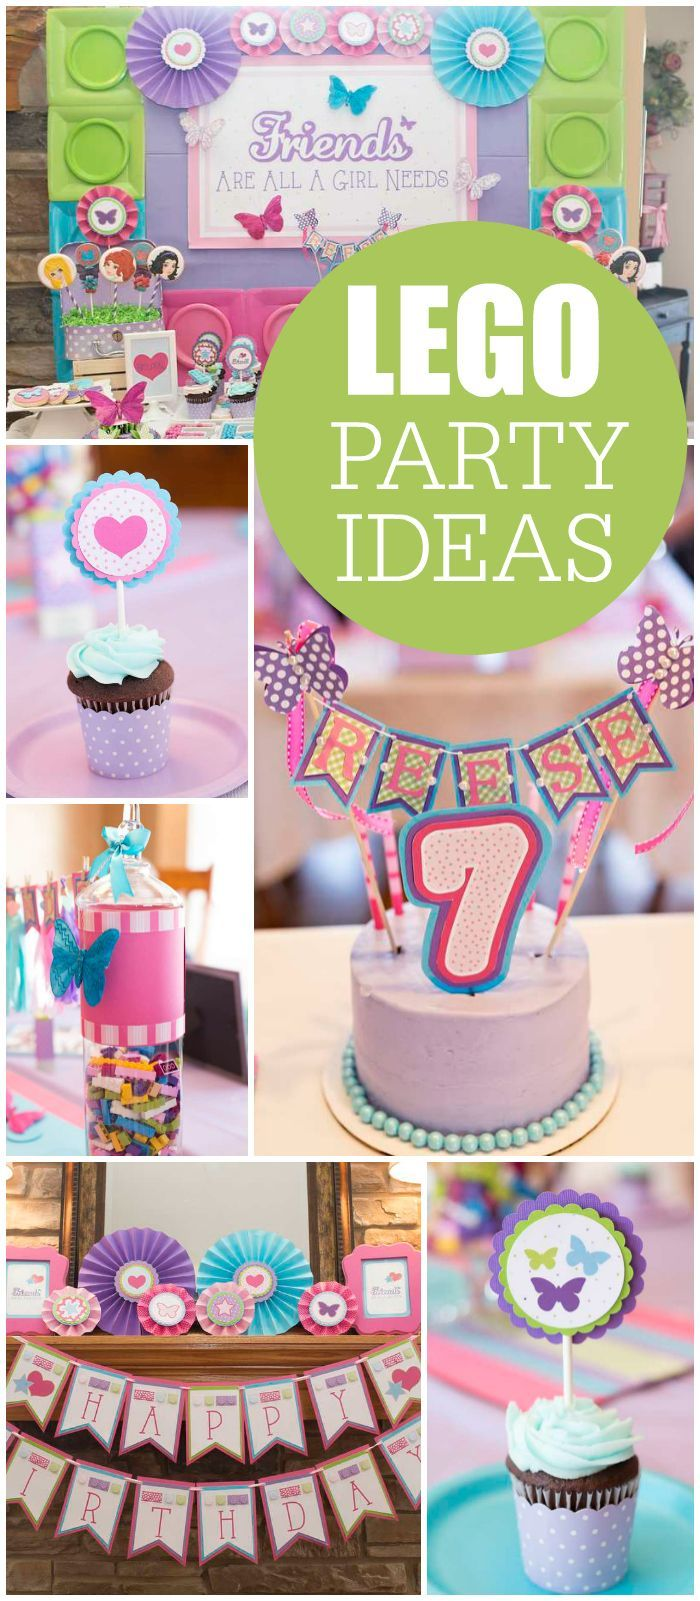 We Love These Ideas For A Fun And Colorful LEGO Friends Birthday Party Add The Characters Emma Stephanie Olivia Andrea Mia To Your